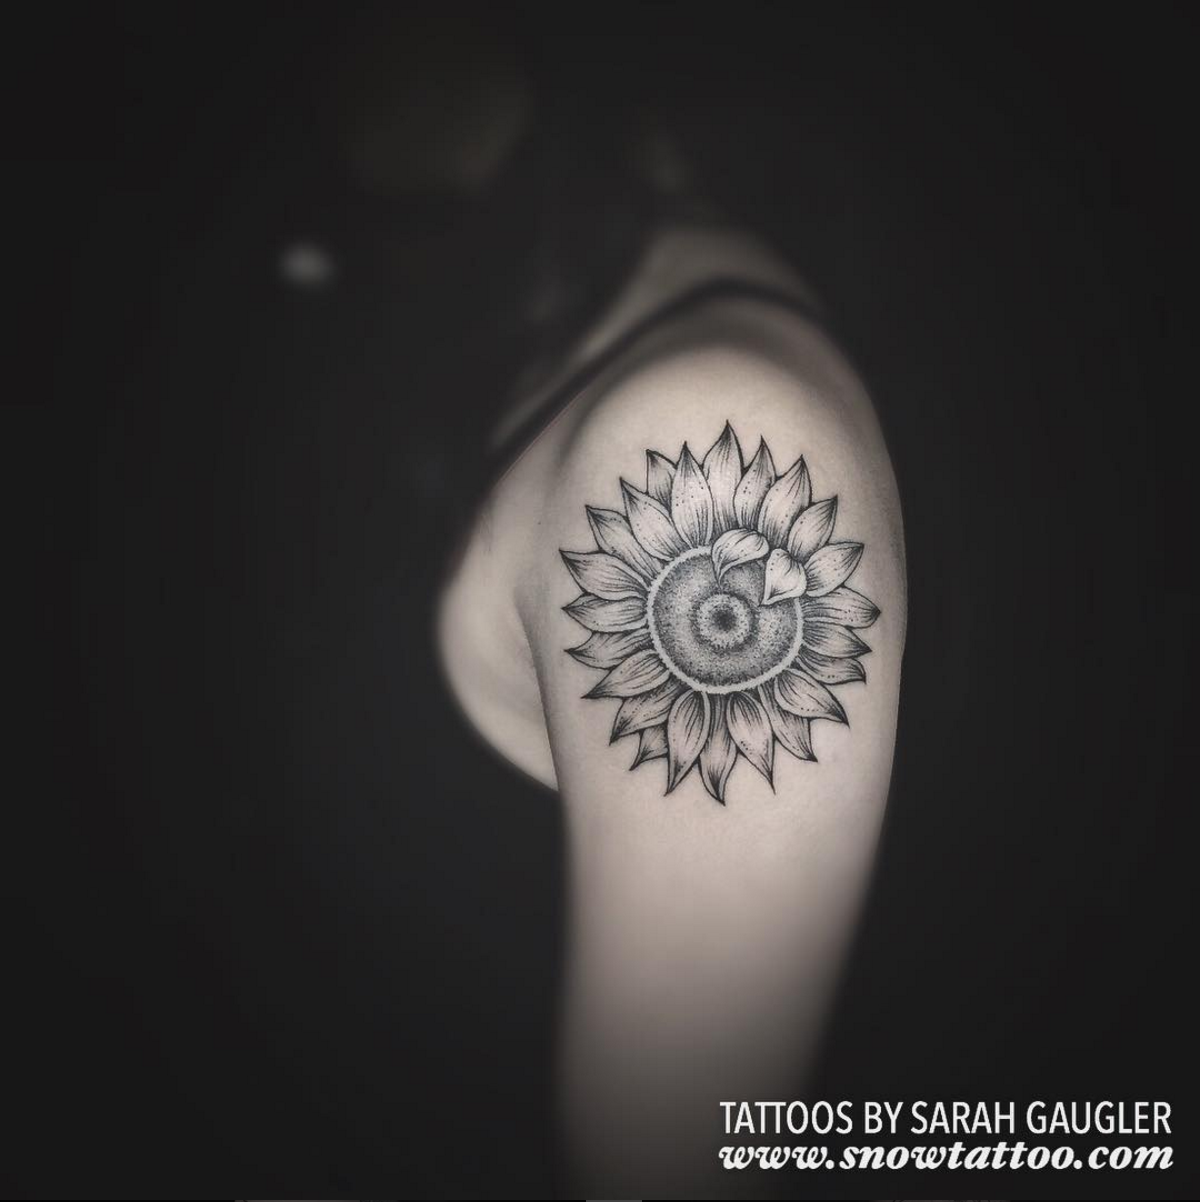 Sarah Gaugler Snow Tattoo Custom Floral Sunflower New York Best Tattoos Best Tattoo Artist NYC.png